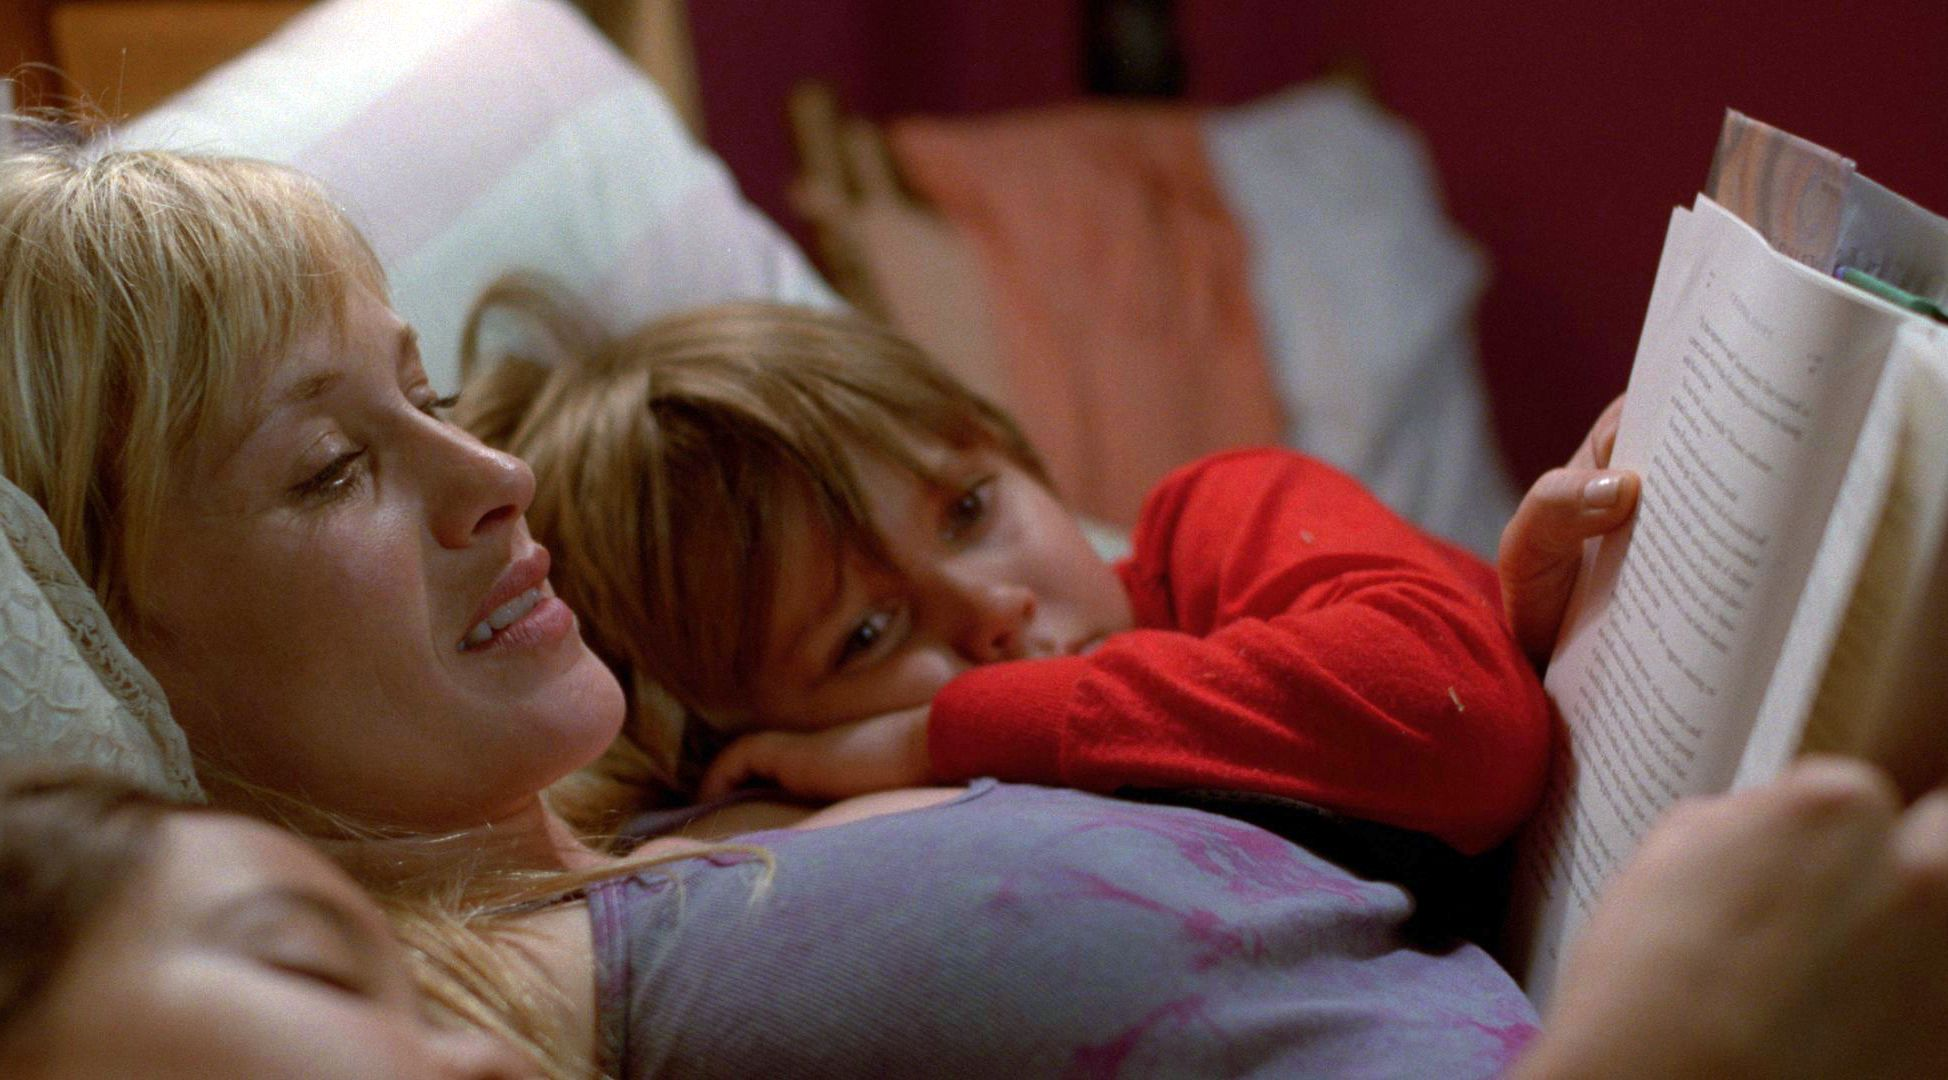 Patricia Arquette reads to her boy in Boyhood